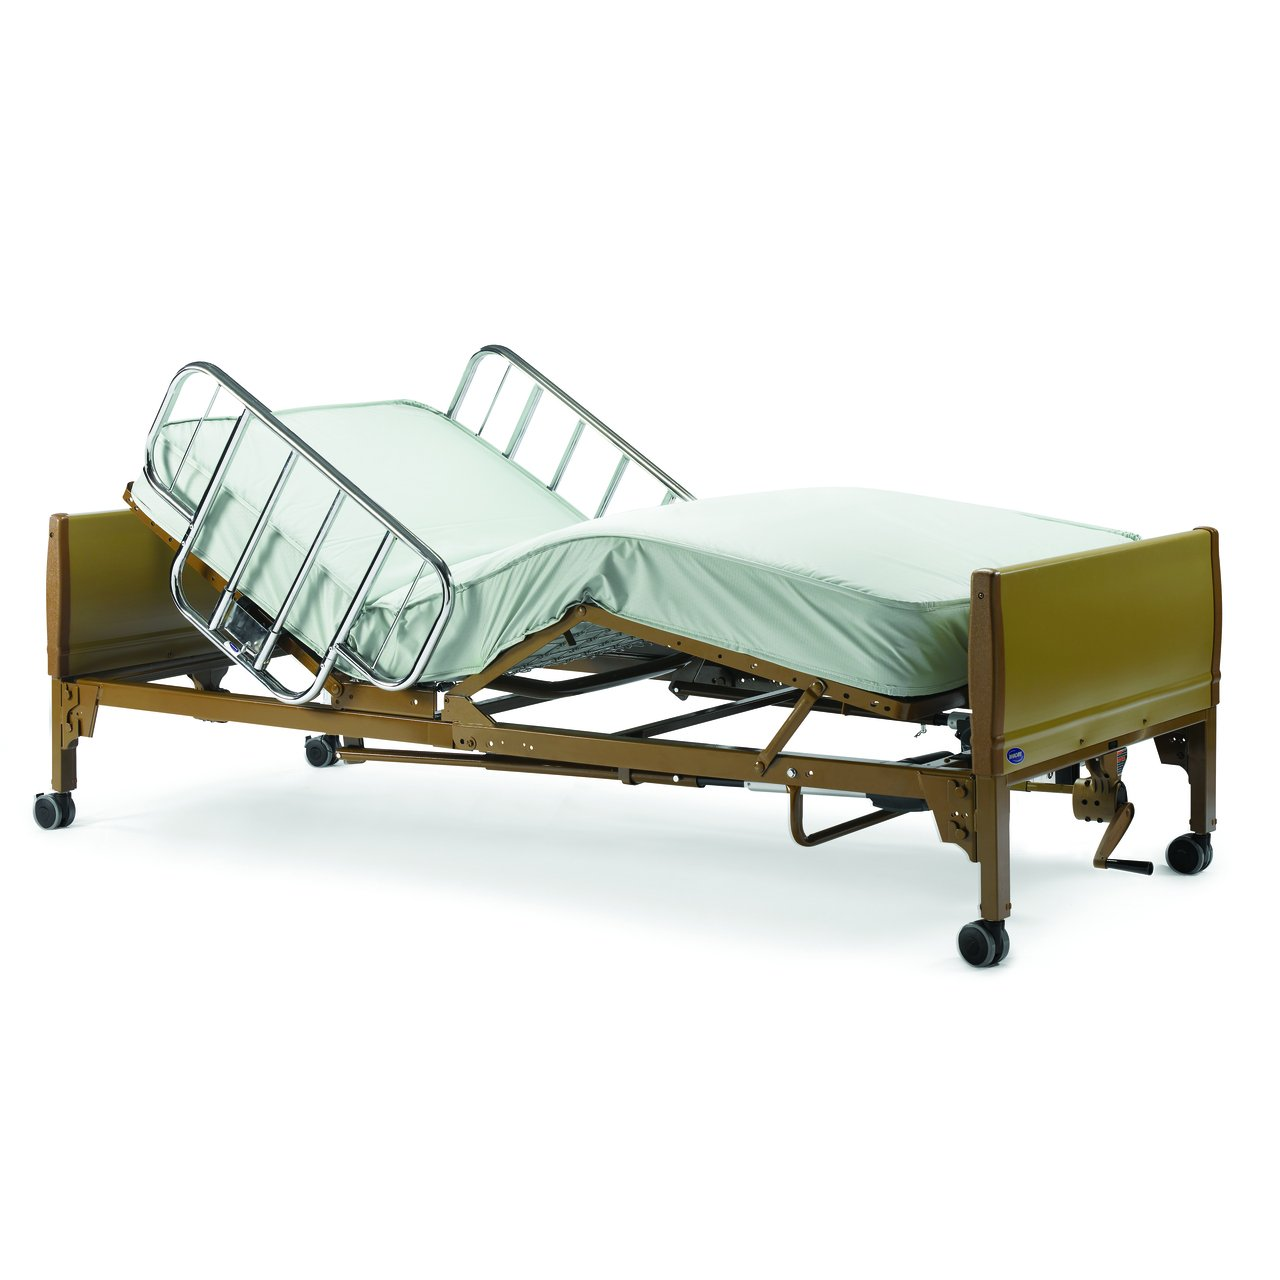 Number of hospital beds in canada - Amazon Com Full Electric Hospital Bed Package Invacare Full Electric Home Hosckpital Bed Paage W Mattress Rail Set Industrial Scientific